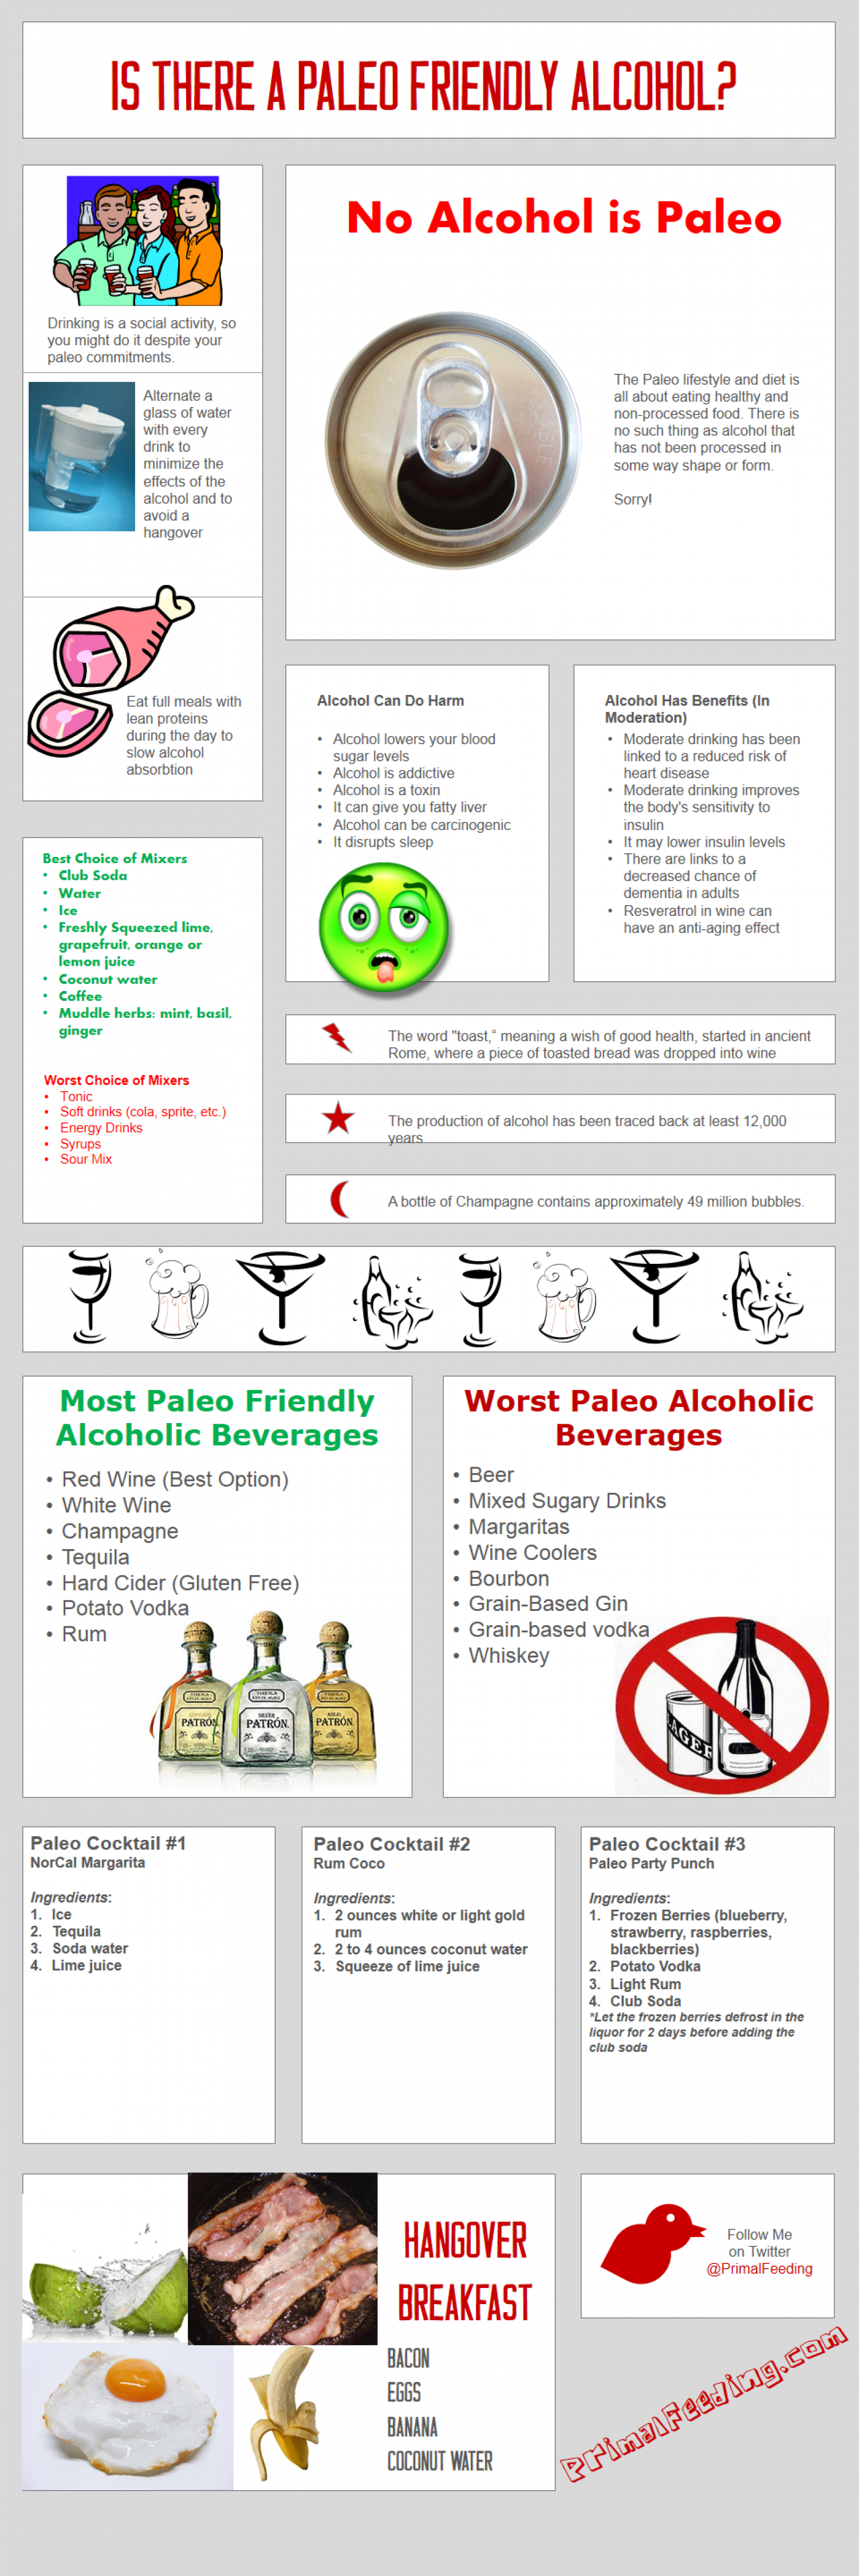 Is There A Paelo Freindly Alcohol? Infographic